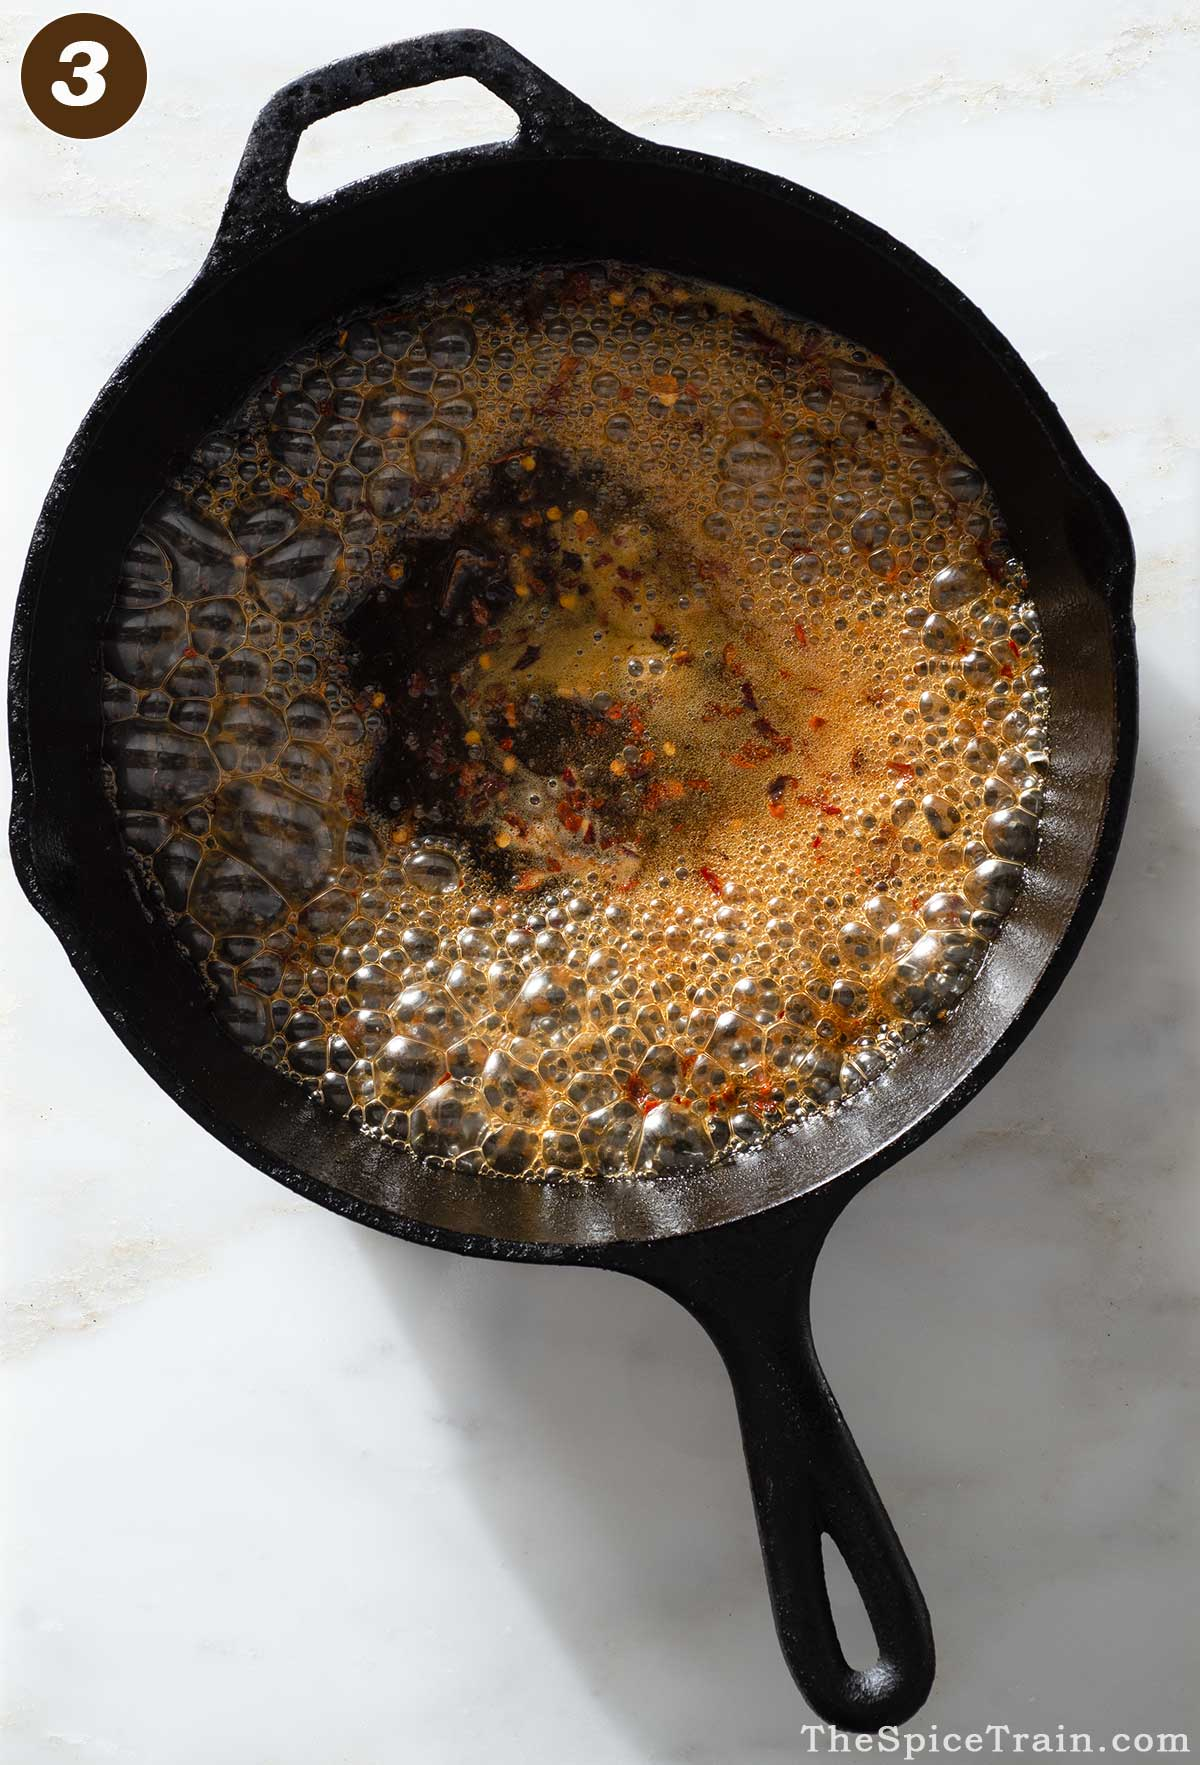 Bubbling sauce being cooked in a cast iron pan.